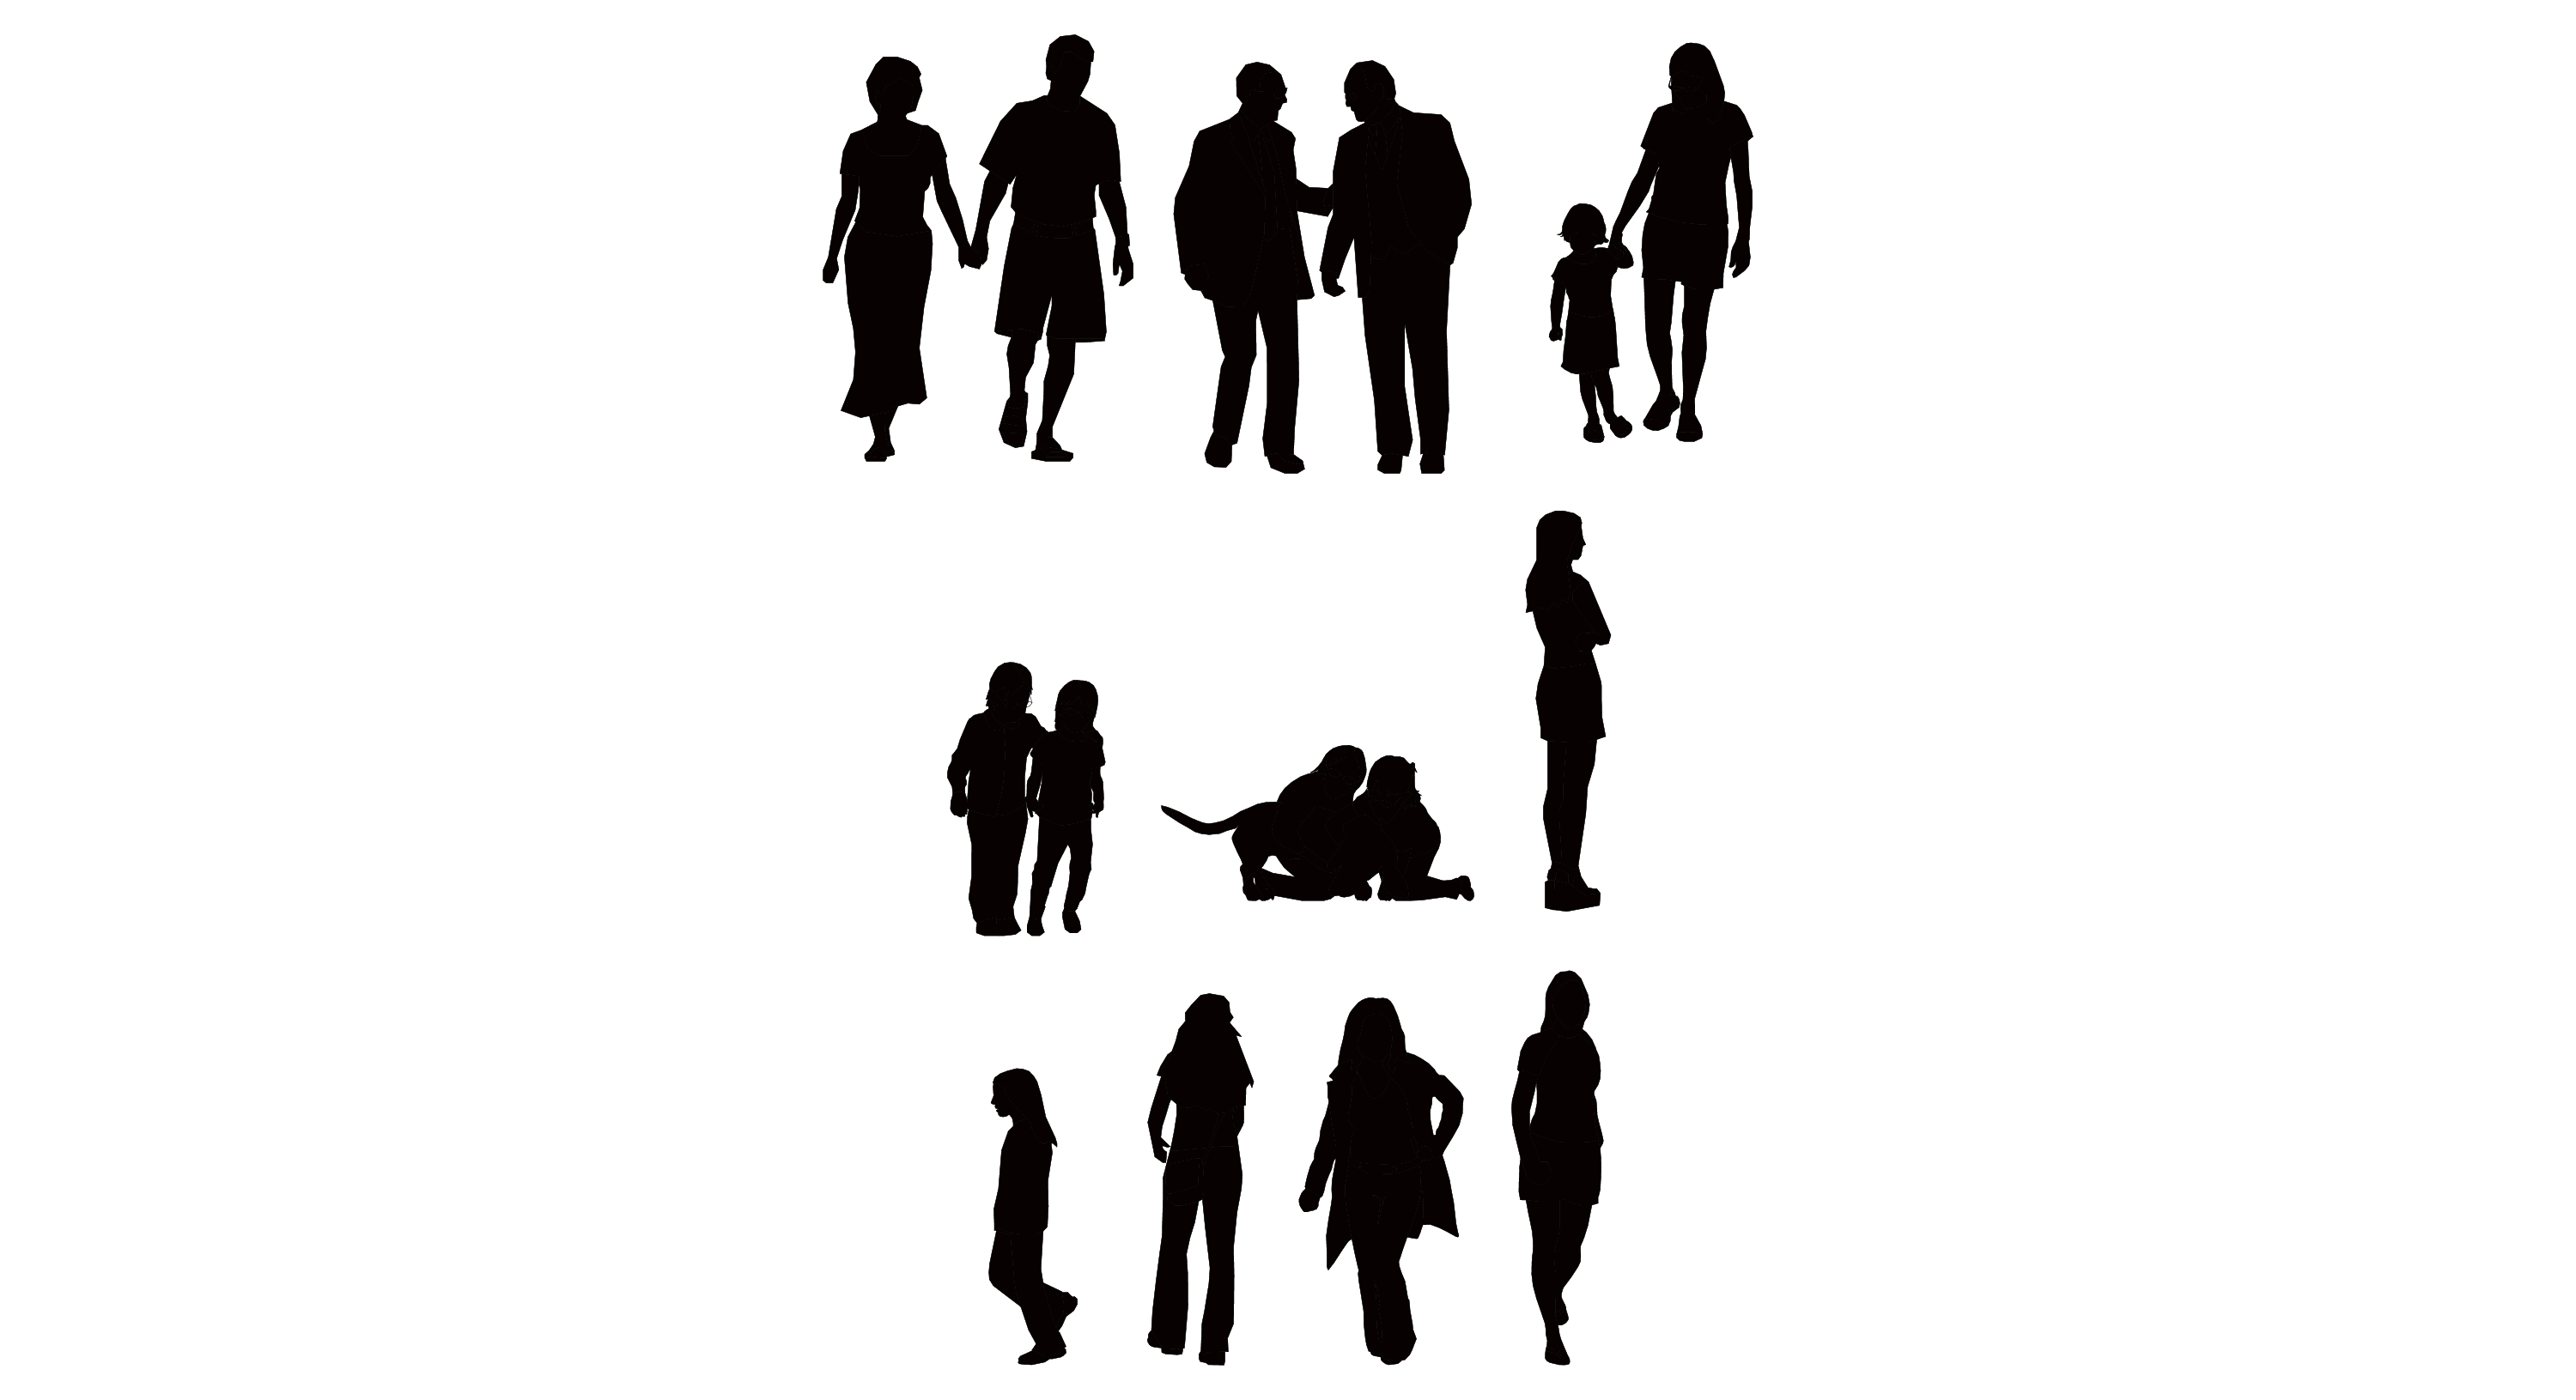 3000x1631 18 Sitting People Vector Graphics Images